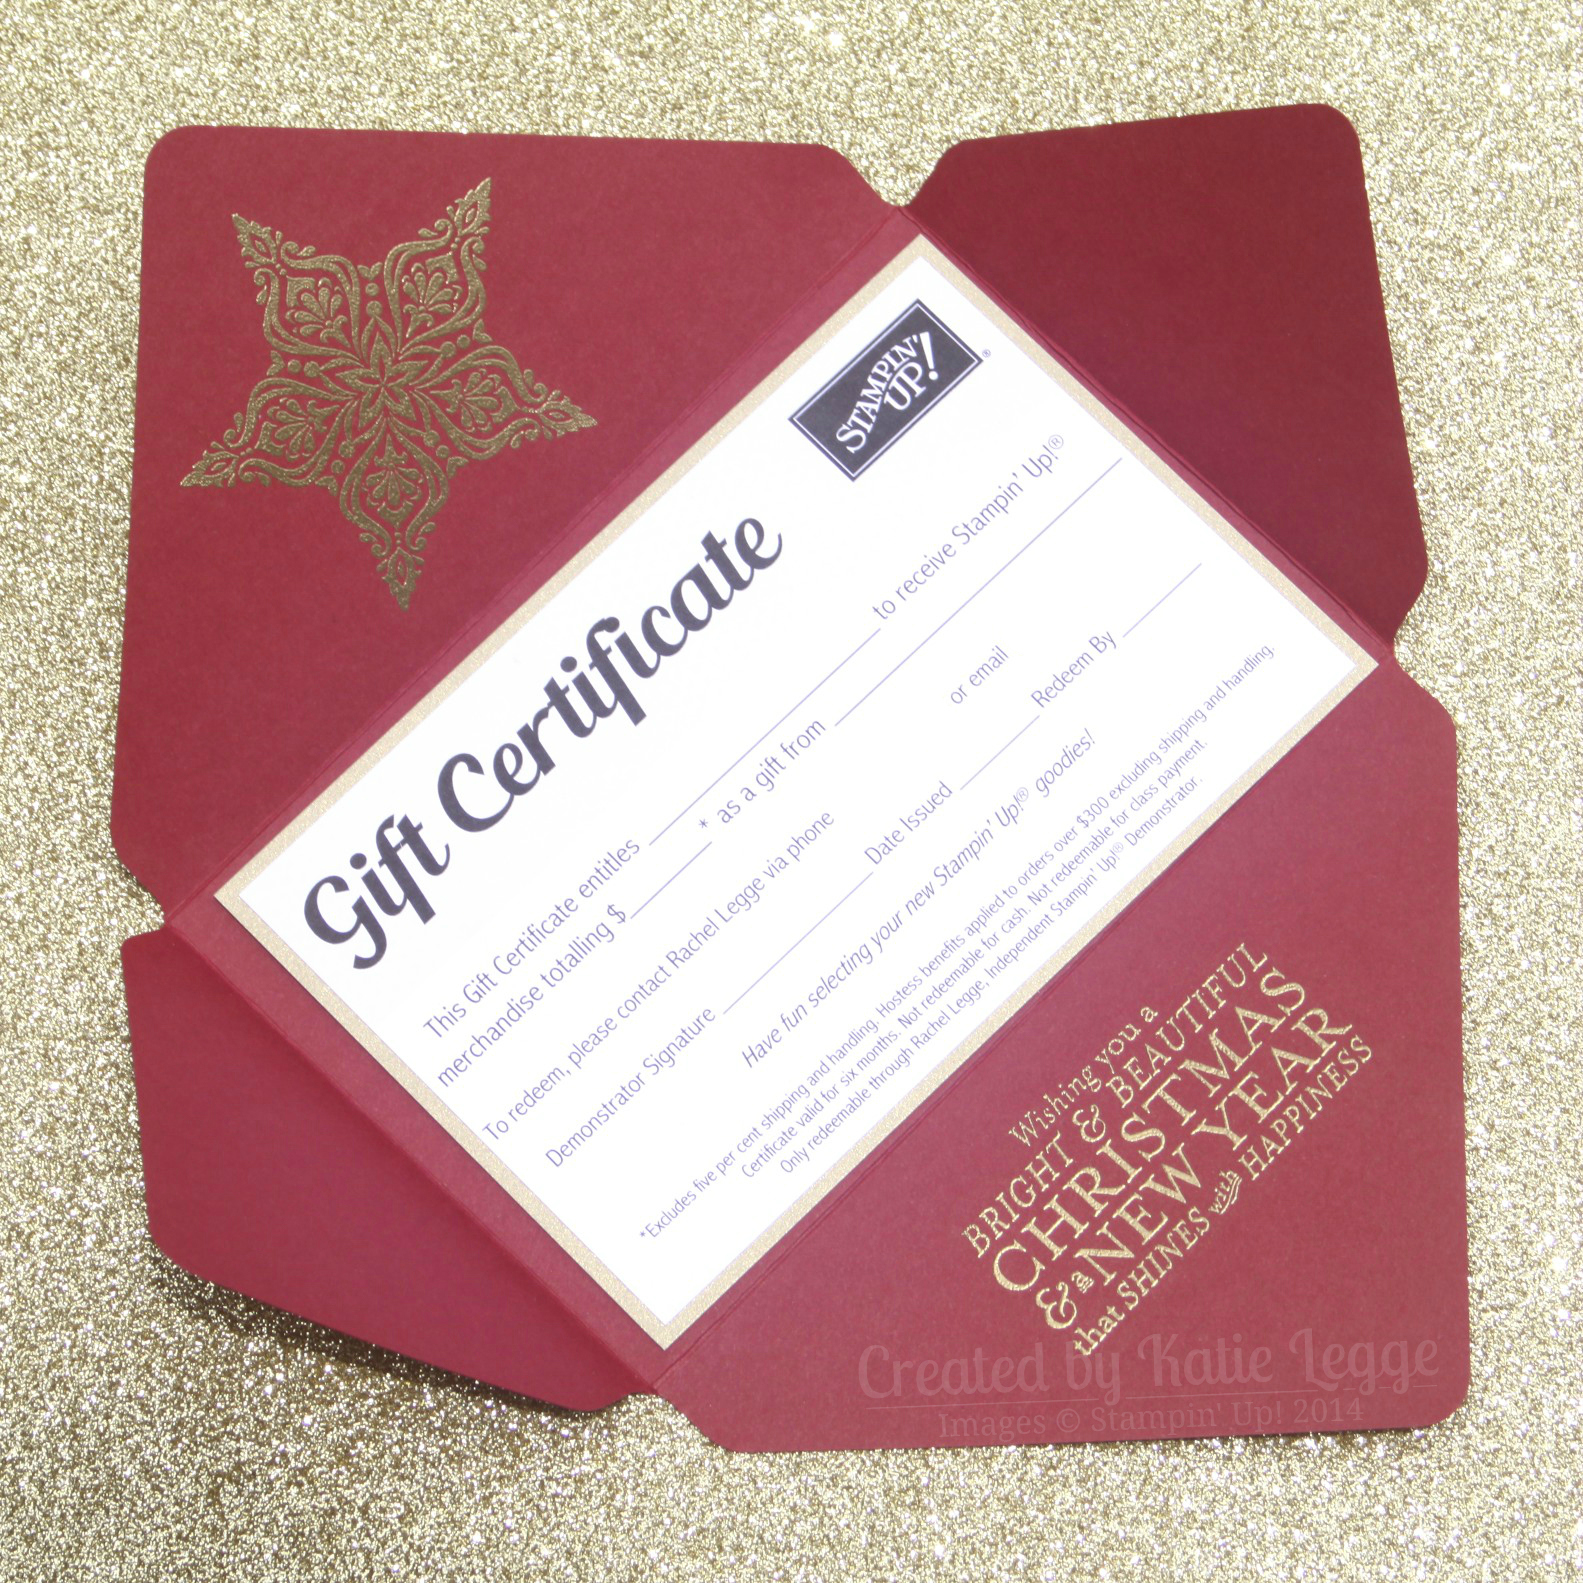 stampin up christmas gift certificate envelope open katie and 1583 times 1583 in gift certificates